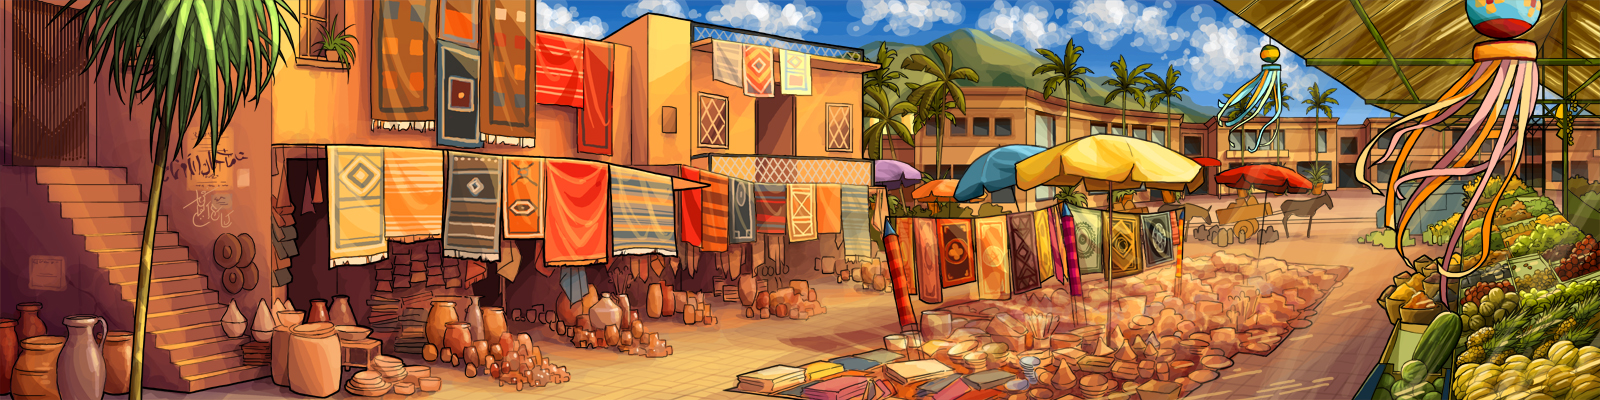 Market Place by tamiart